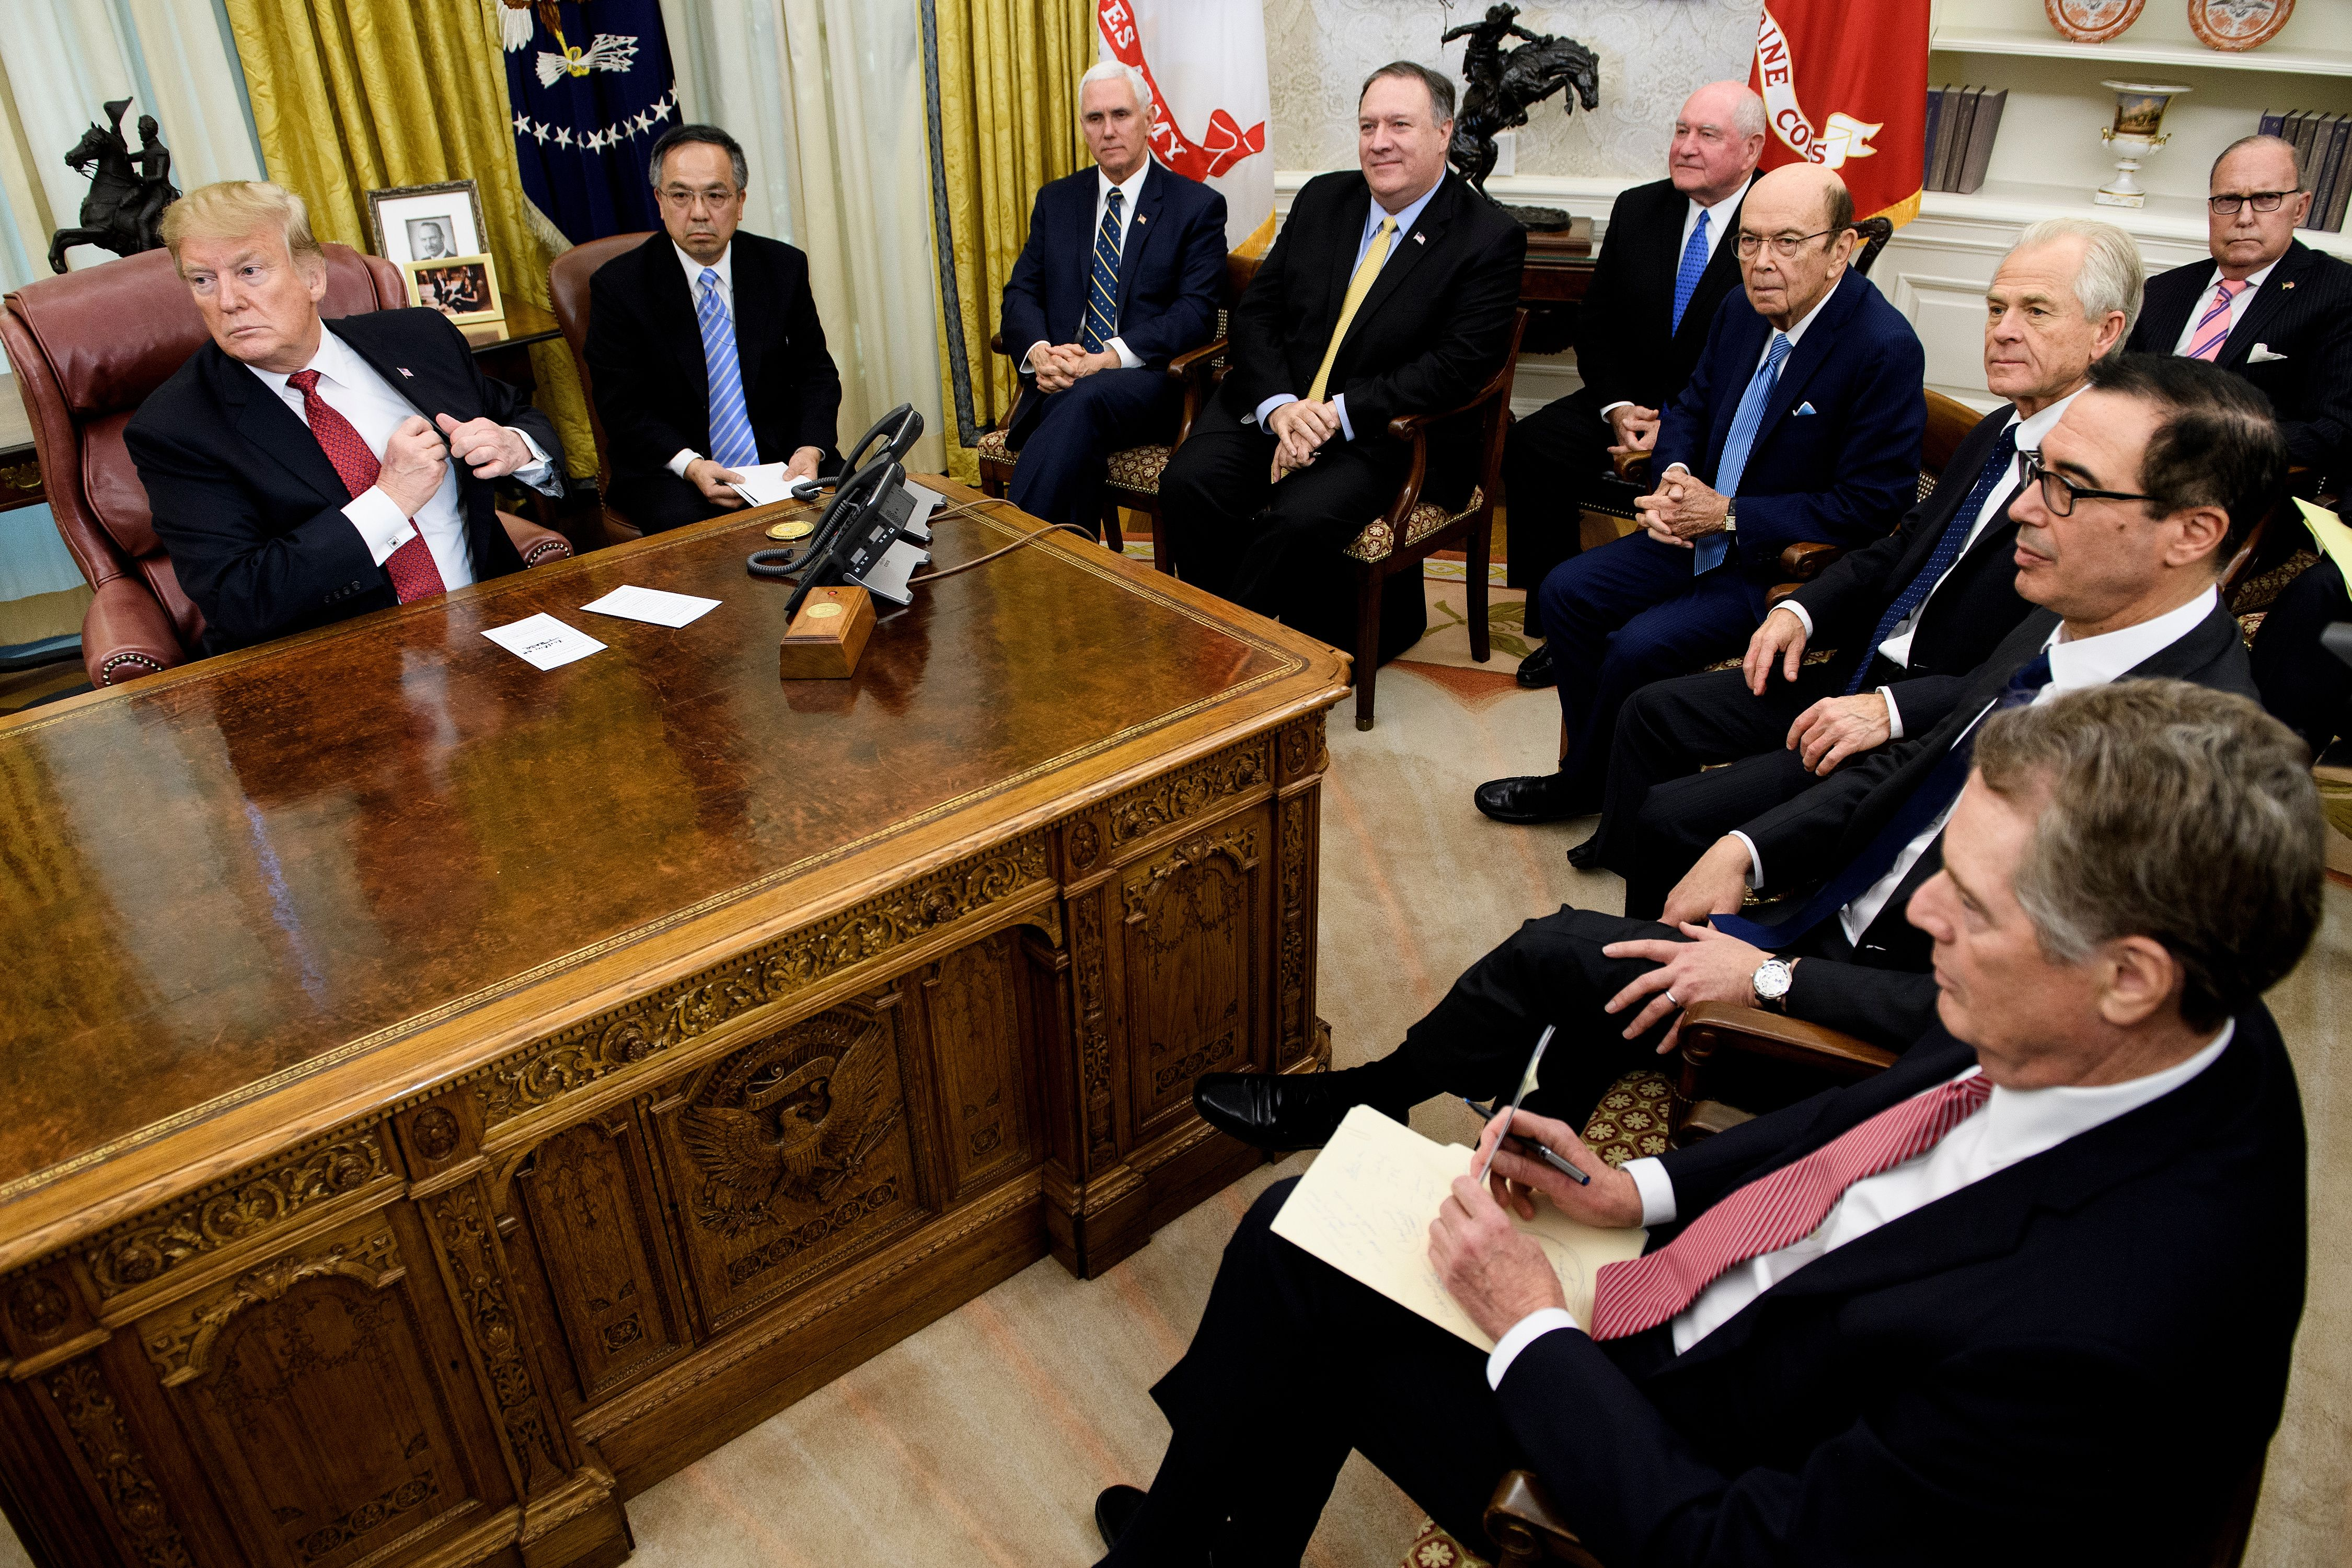 US President Donald Trump (L) waits with US Vice President Mike Pence (3L), US Secretary of State Mike Pompeo (4L), US Secretary of Agriculture Sonny Perdue (5L), US Secretary of Commerce Wilbur Ross (5R), Peter Navarro (4R), US Trade Representative Robert Lighthizer (3R), US Secretary of the Treasury Steven Mnuchin (2R), National Economic Council Director Larry Kudlow (R) and others for a meeting with China's Vice Premier Liu He and other Chinese officials in the Oval Office of the White House January 31, 2019 in Washington, DC. (Photo by BRENDAN SMIALOWSKI/AFP/Getty Images)